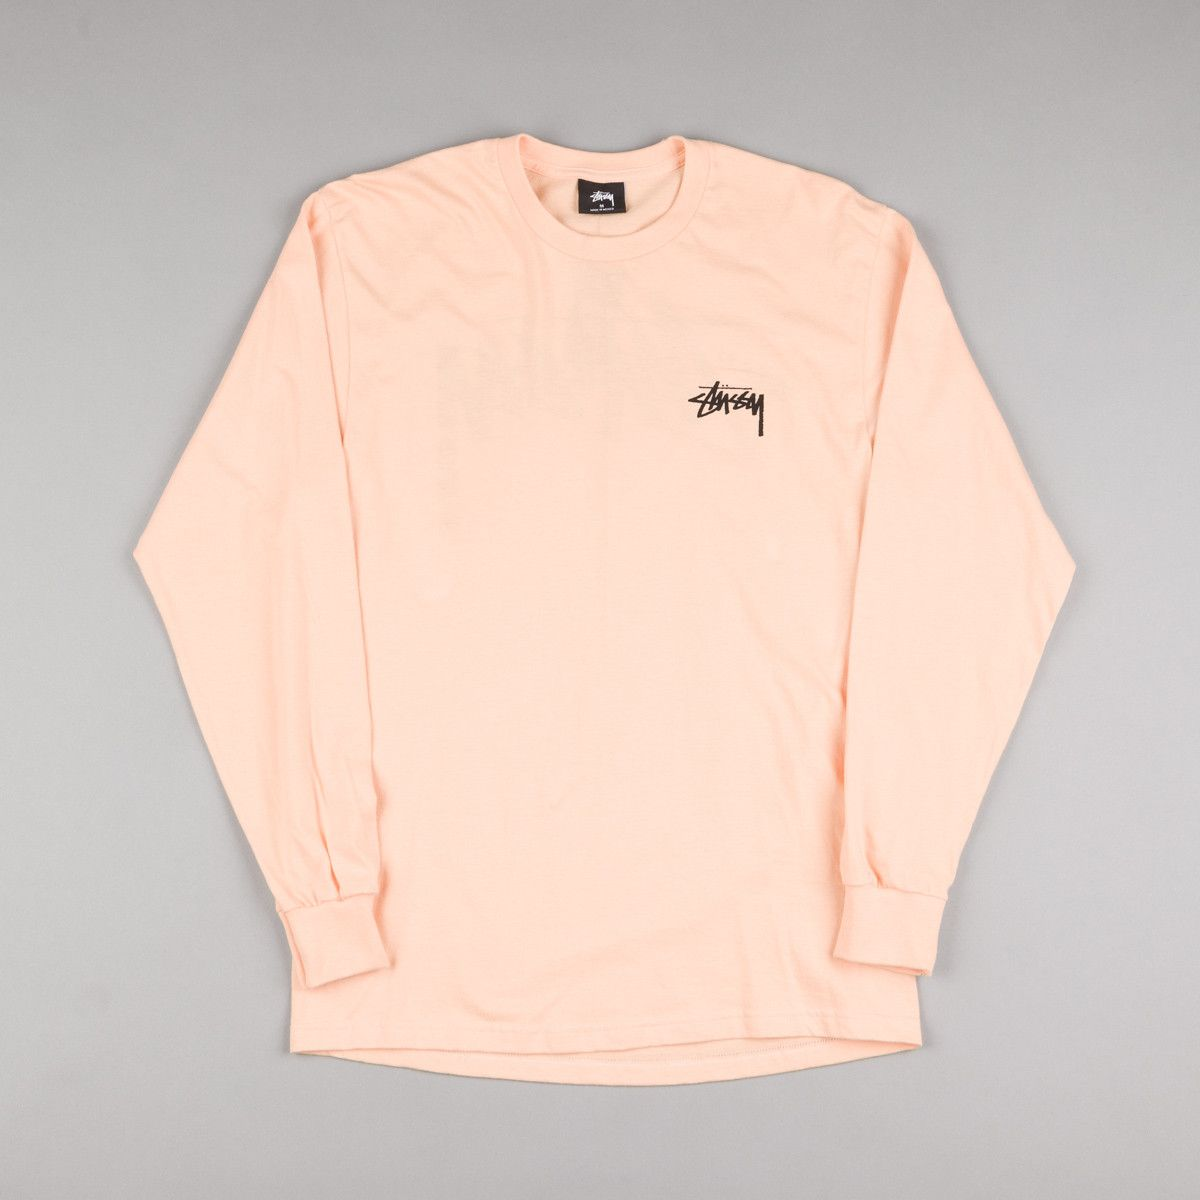 Stussy Original Stock Long Sleeve T-Shirt